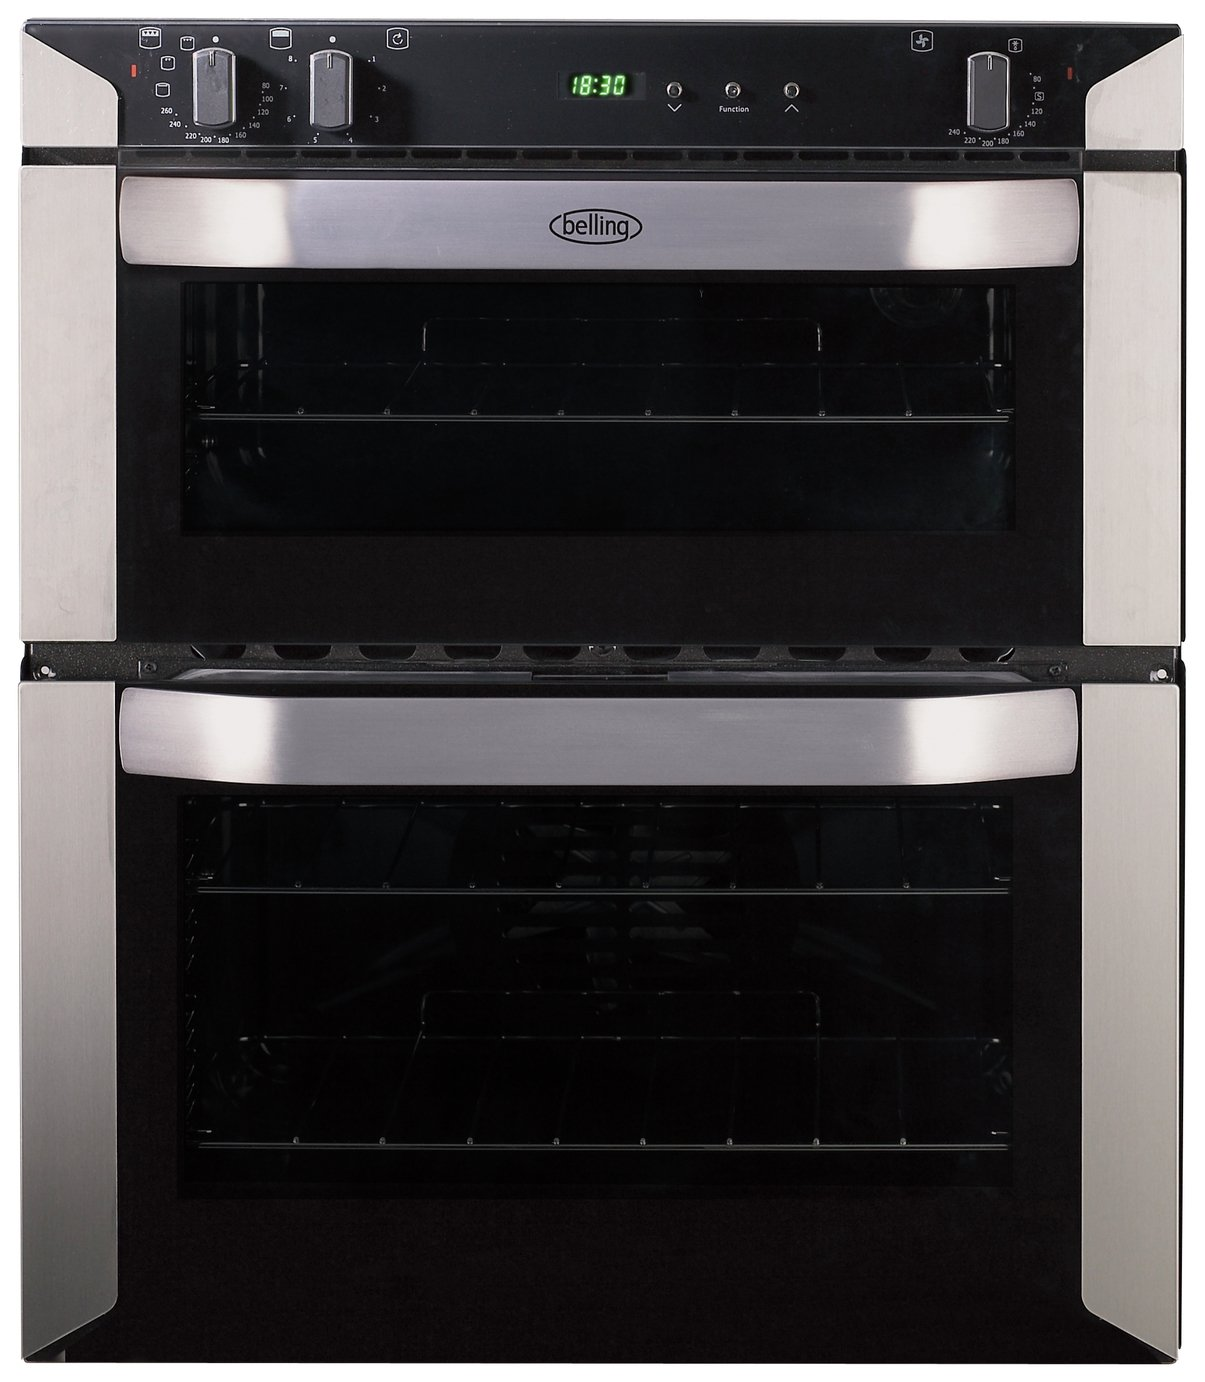 Image of Belling BI70FPBU Built-In Electric Double Oven - S/ Steel